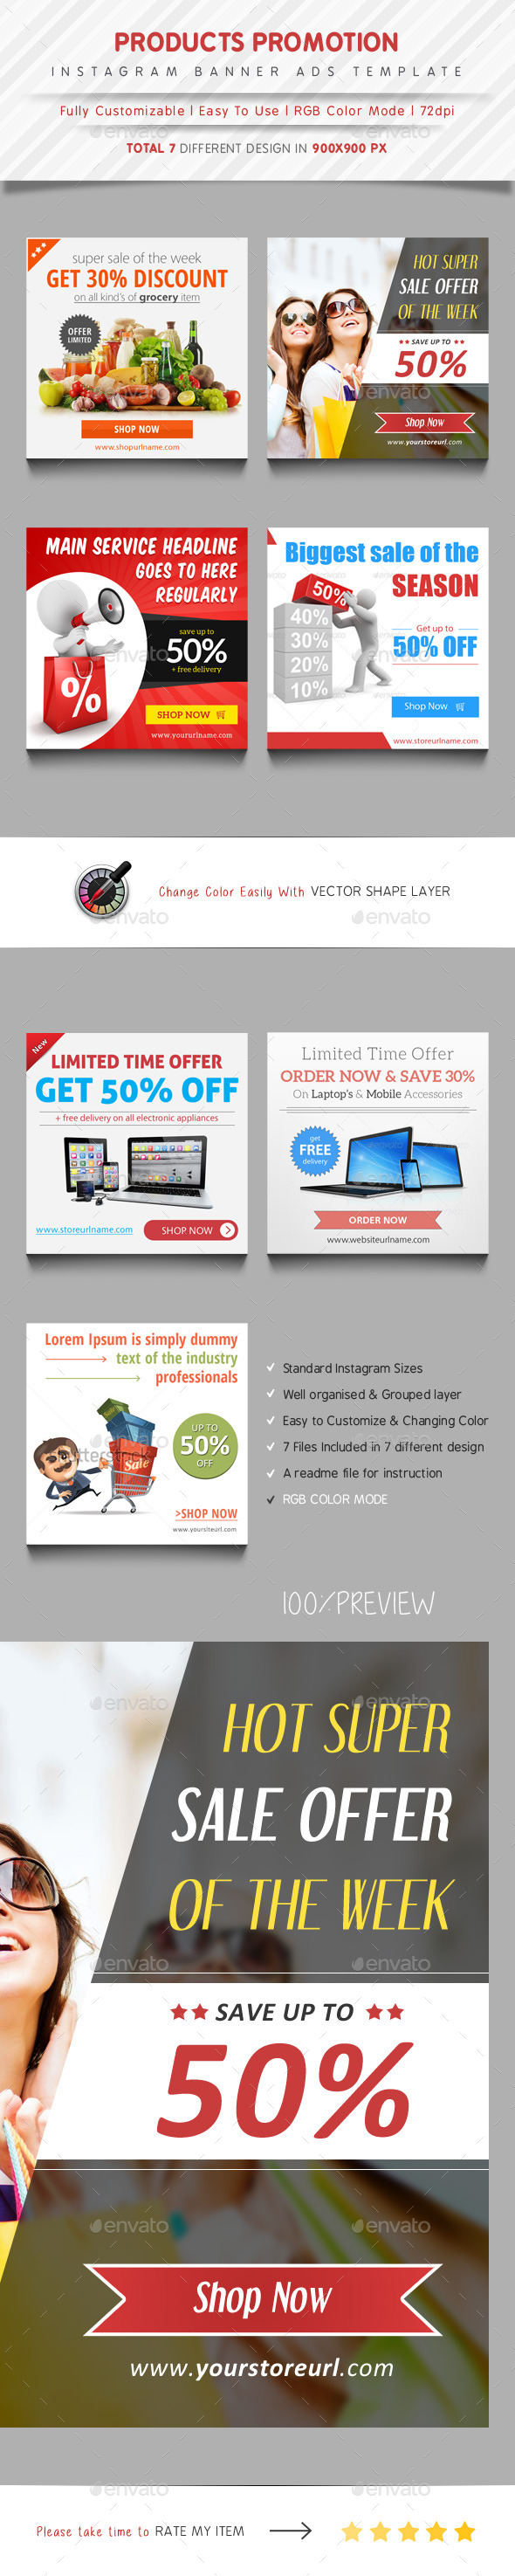 GraphicRiver Instagram Banner Ads Template 11213138